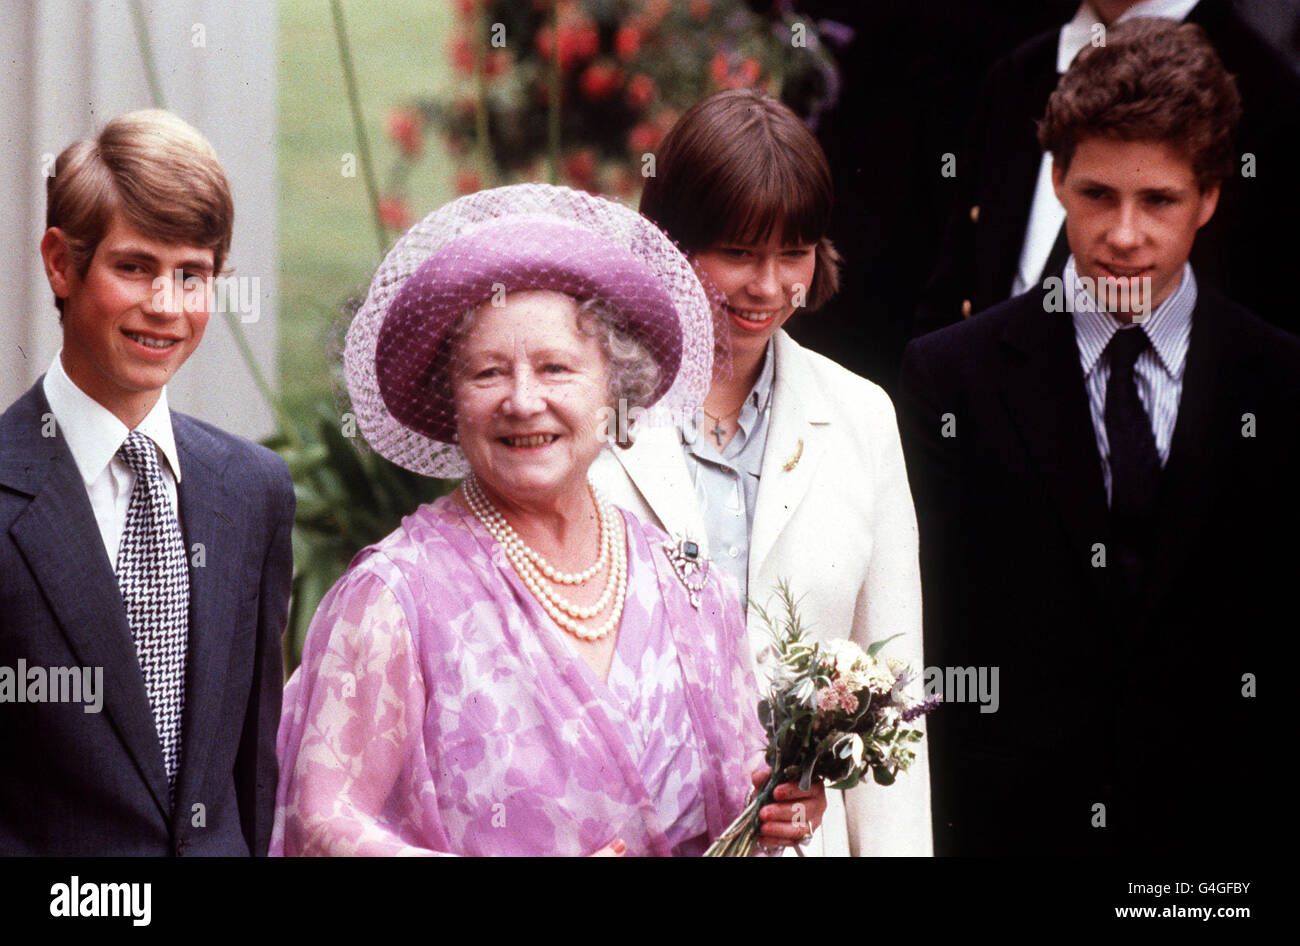 Lady Sarah Chatto Imágenes De Stock & Lady Sarah Chatto Fotos De ...